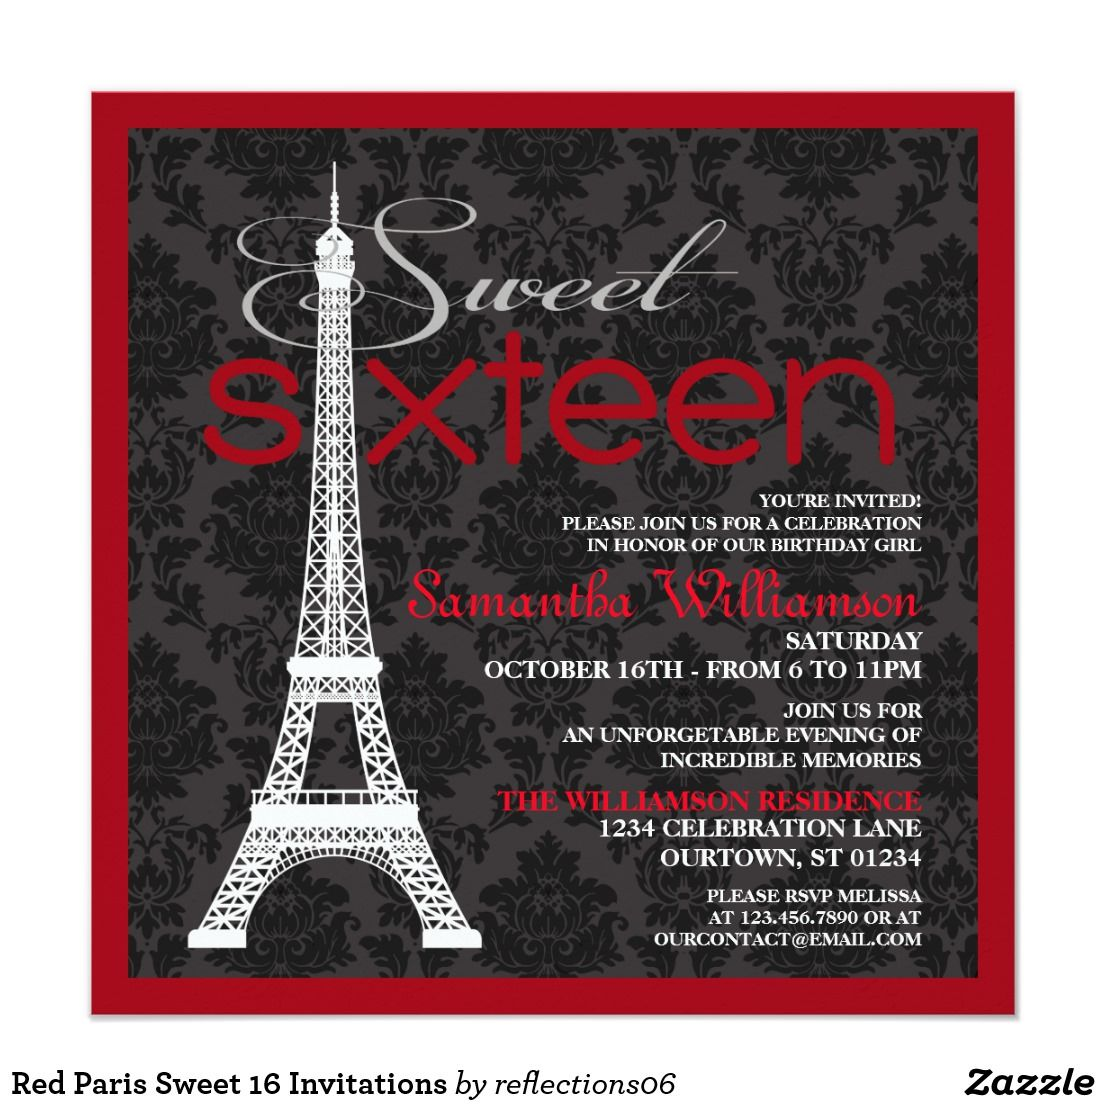 Red Paris Sweet 16 Invitations | Paris sweet 16, Sweet 16 ...